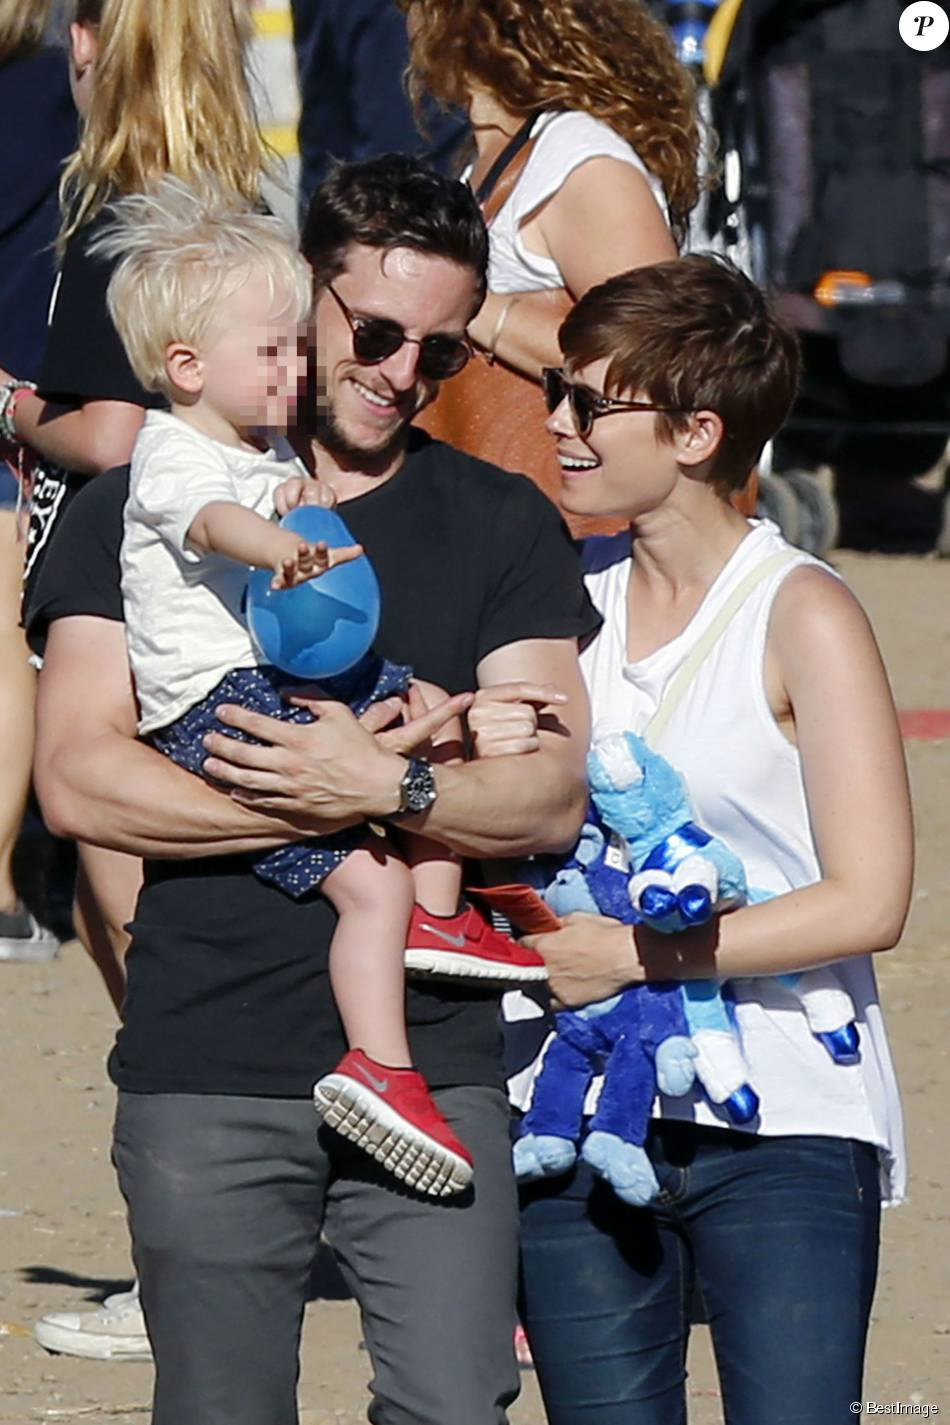 jamie bell avec son fils et son amoureuse kate mara billy elliot aux anges purepeople. Black Bedroom Furniture Sets. Home Design Ideas